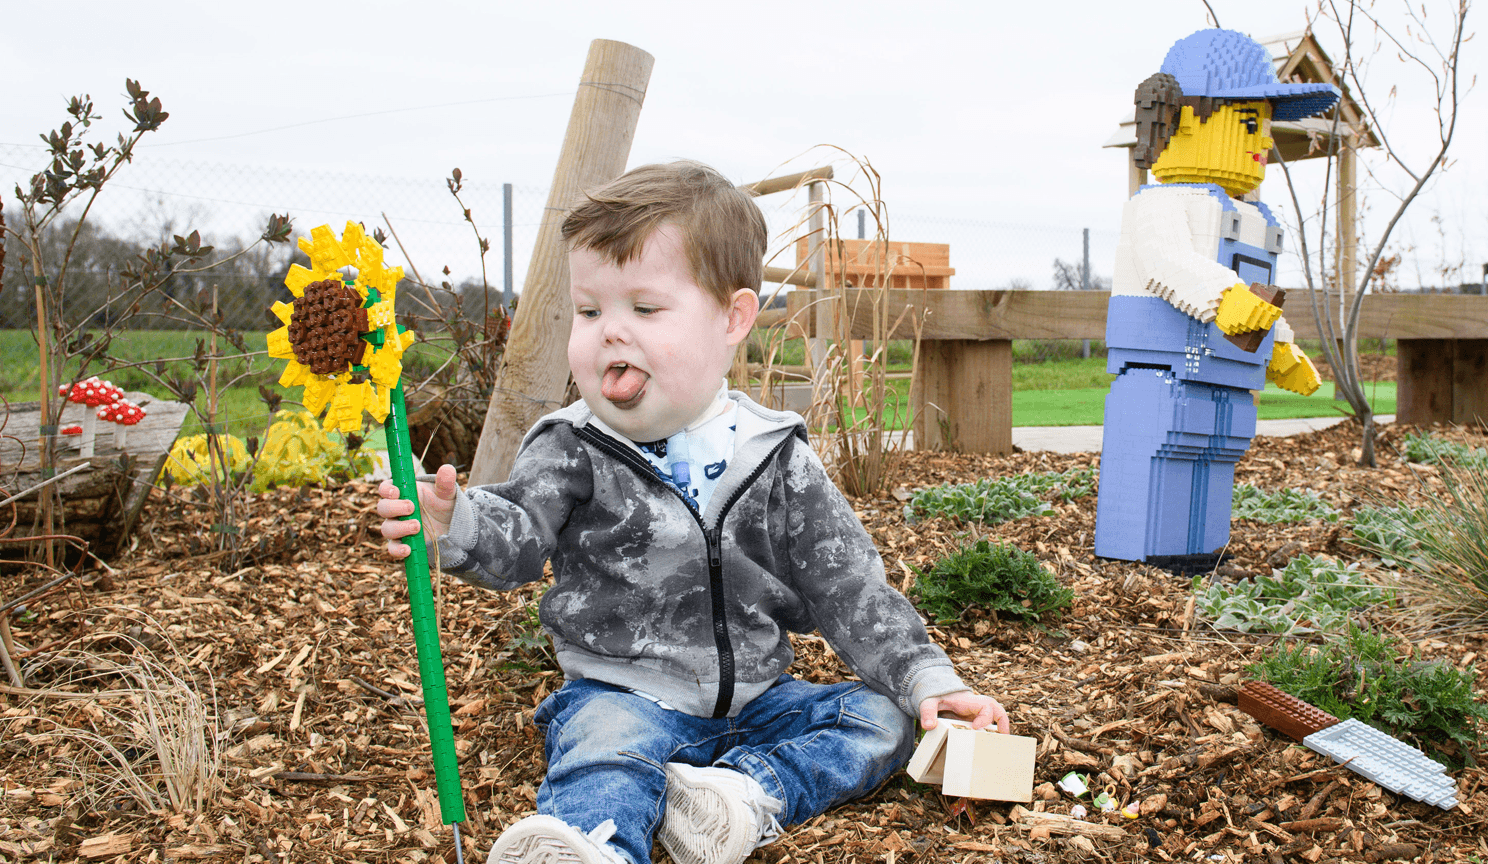 Young boy playing with lego sunflower.